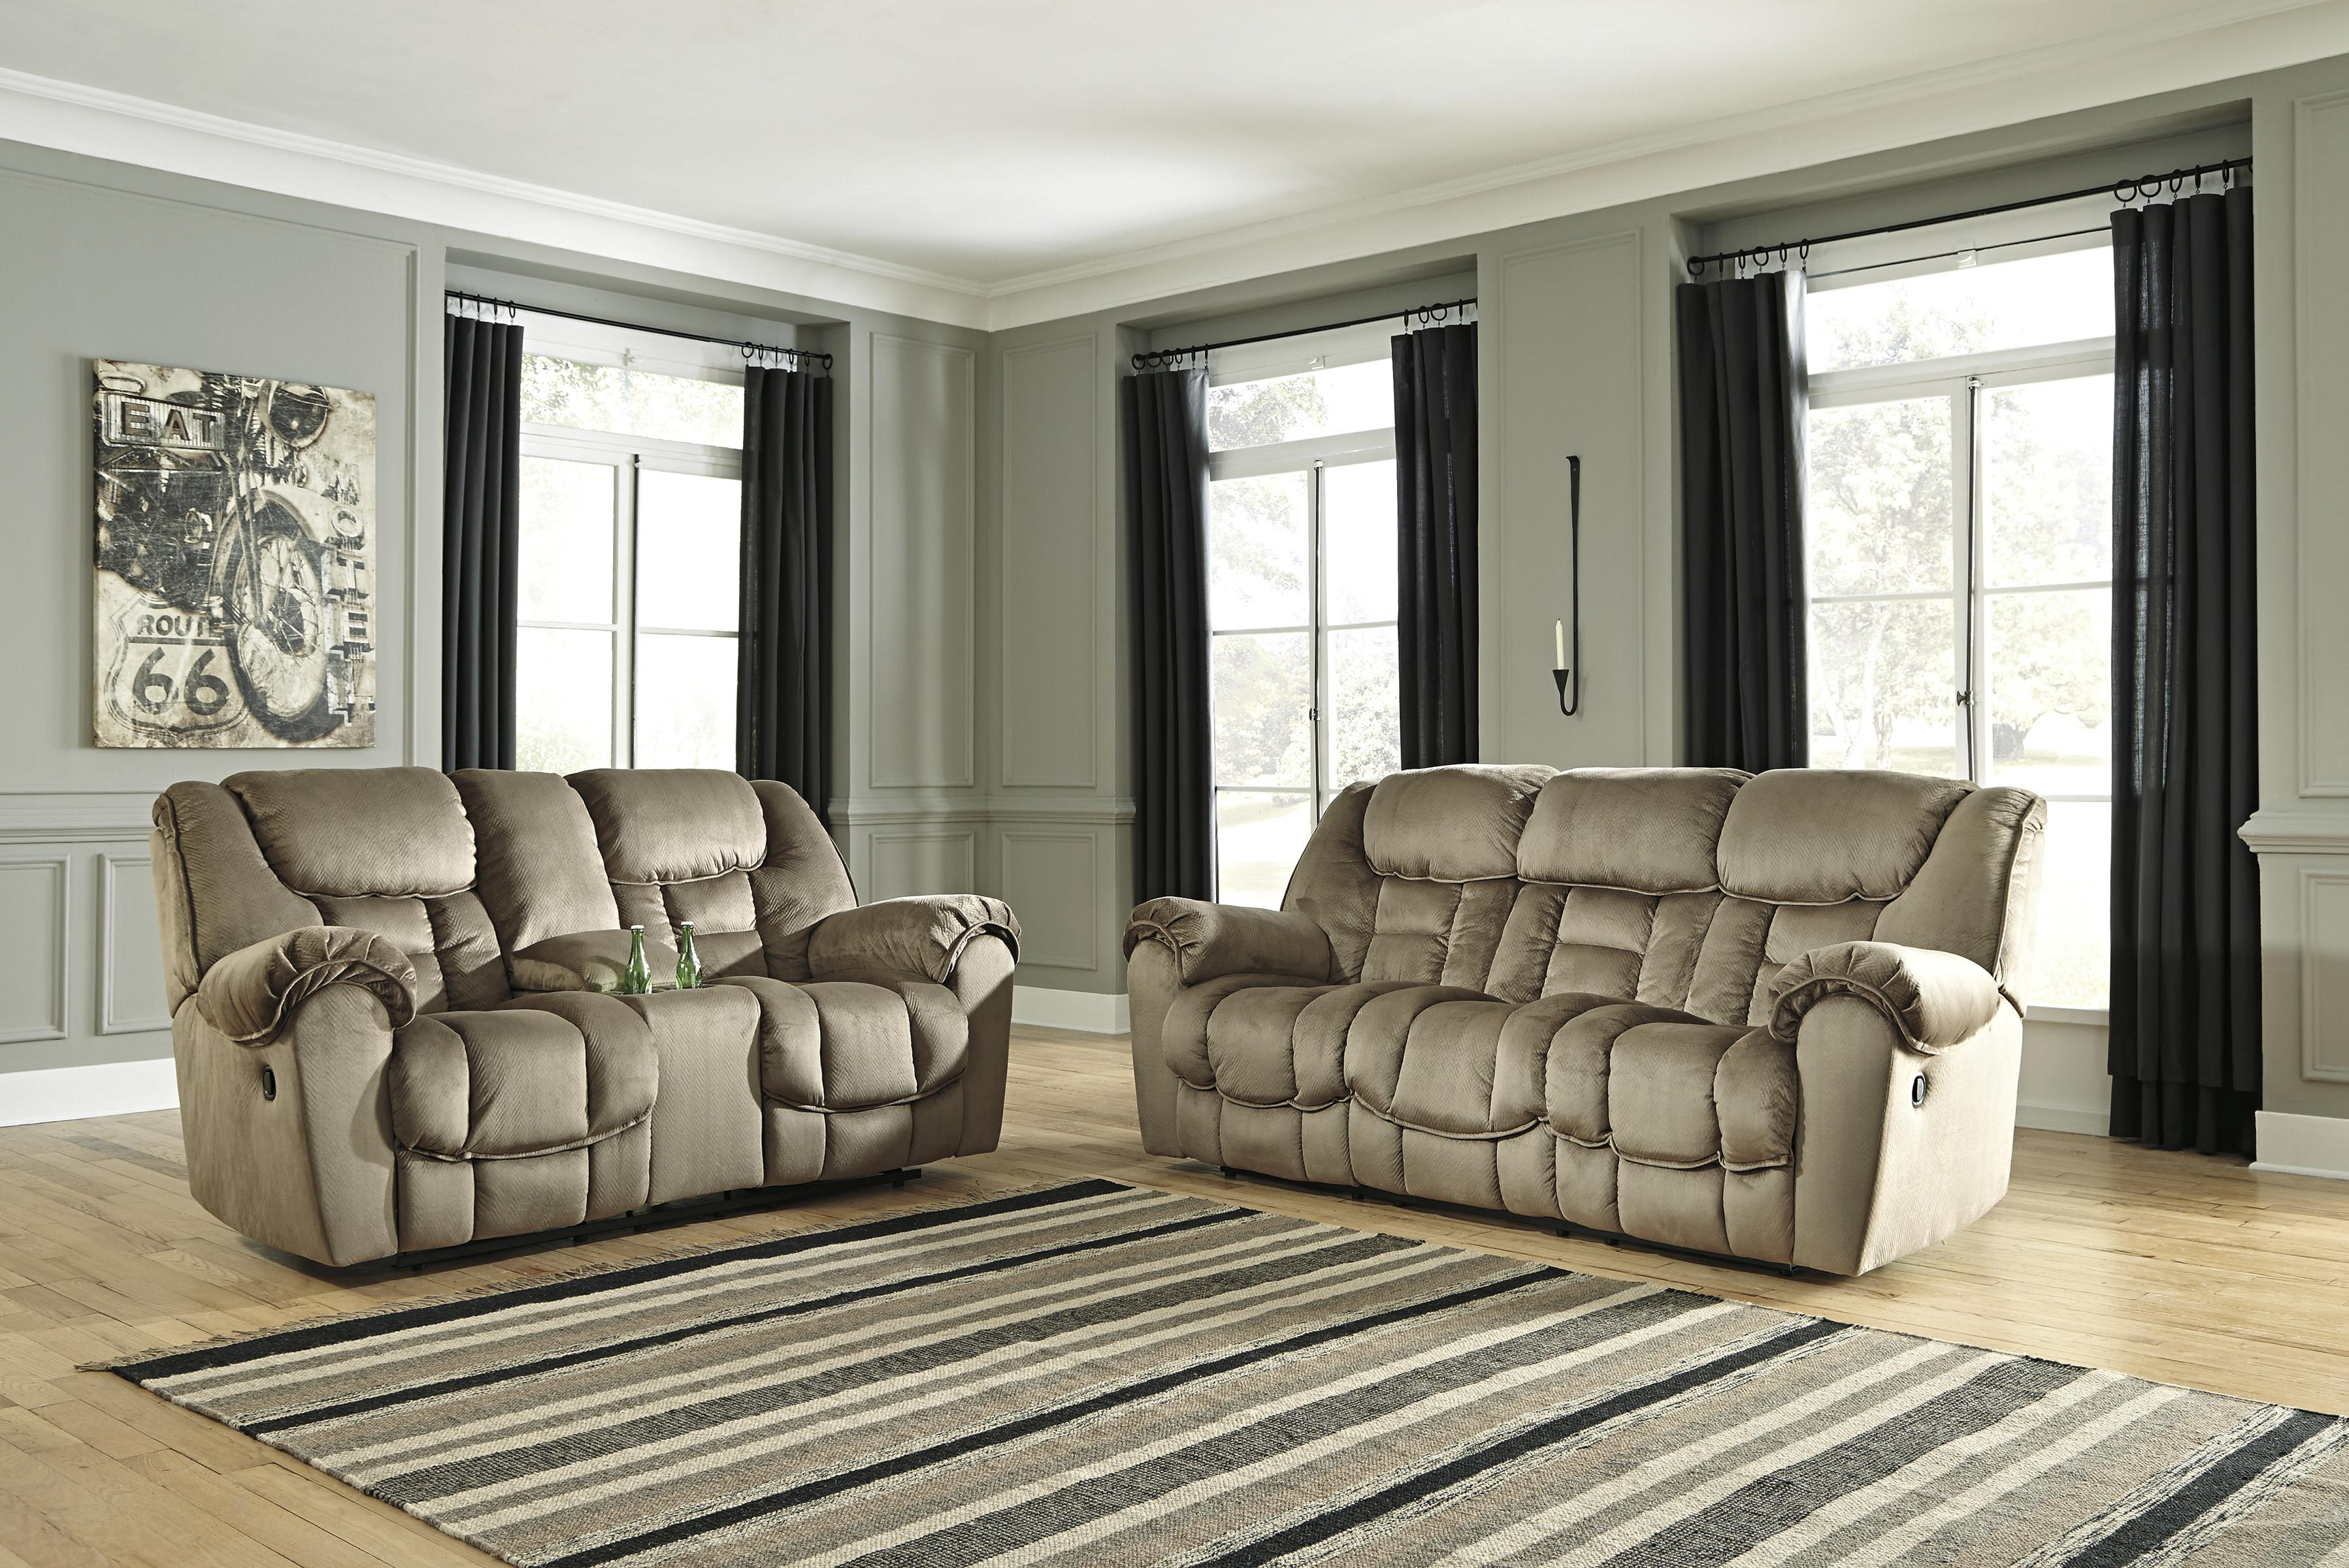 Benchcraft Jodoca Reclining Living Room Group - Item Number: 36601 Living Room Group 1